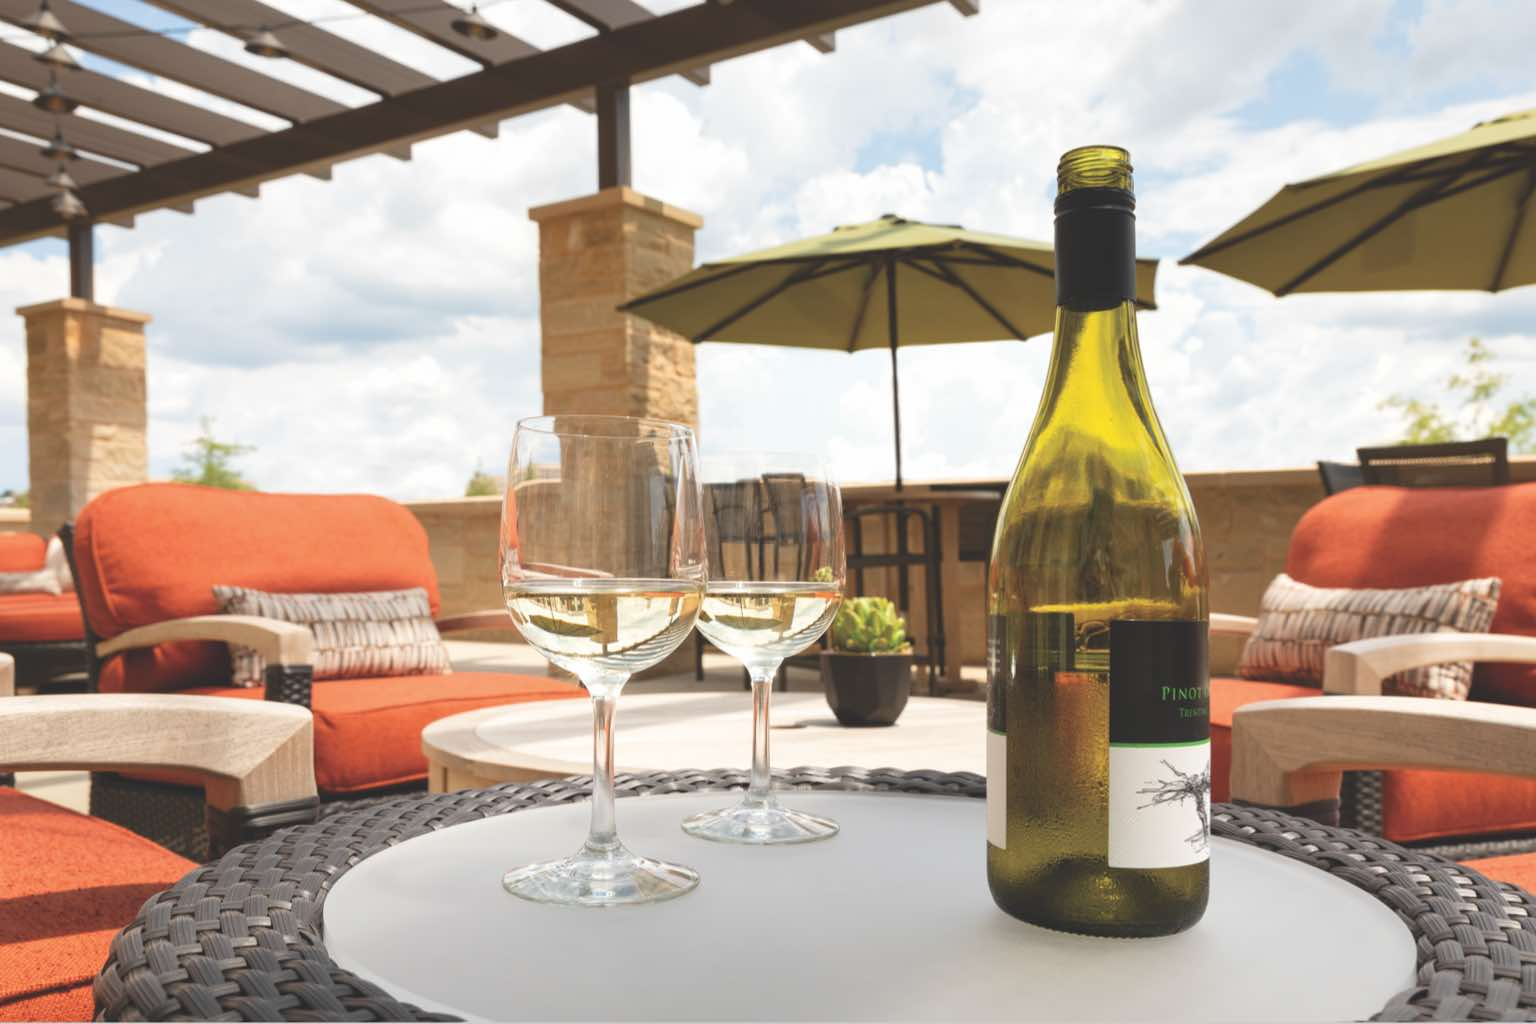 Two wine glasses and a bottle of wine on a table on an outdoor terrace